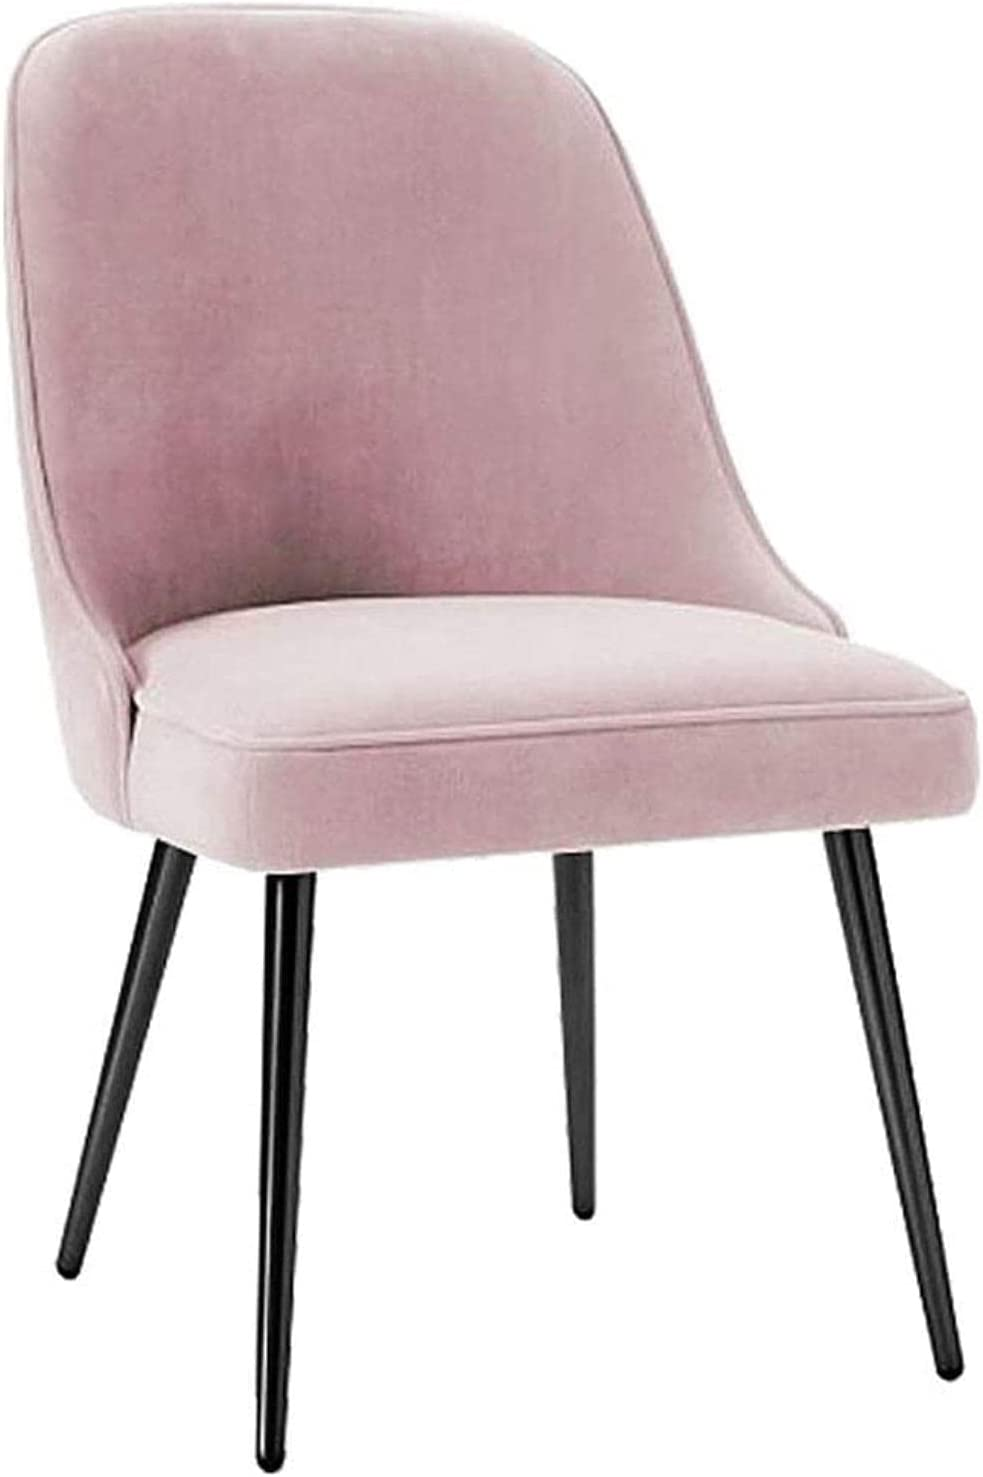 Chairs - Las Vegas Mall Dining Chair We OFFer at cheap prices Pink Living Roo Square Velvet Seat